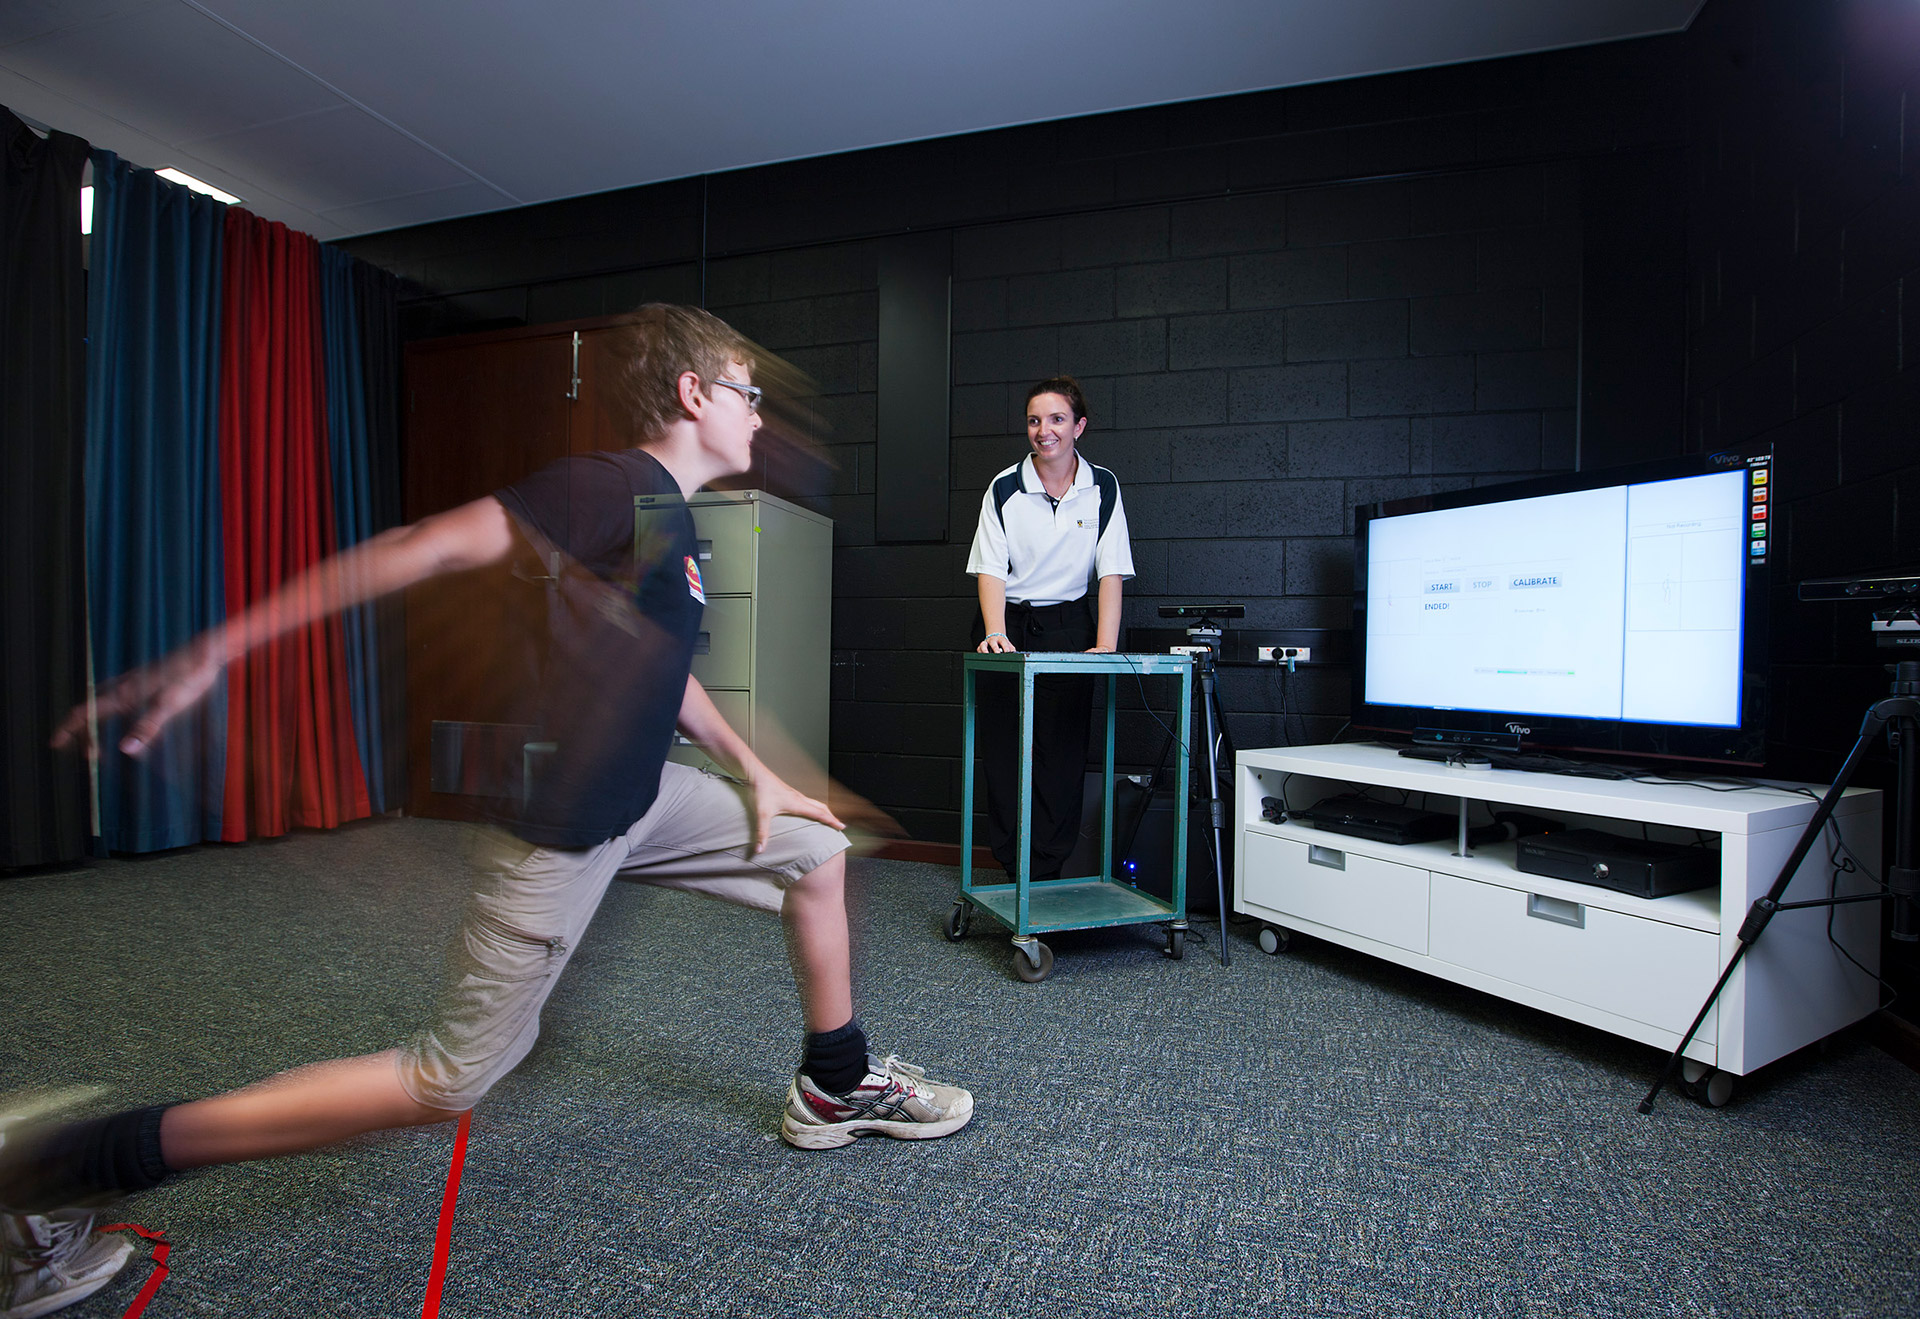 The team developed software to determine whether exergaming movements were effective